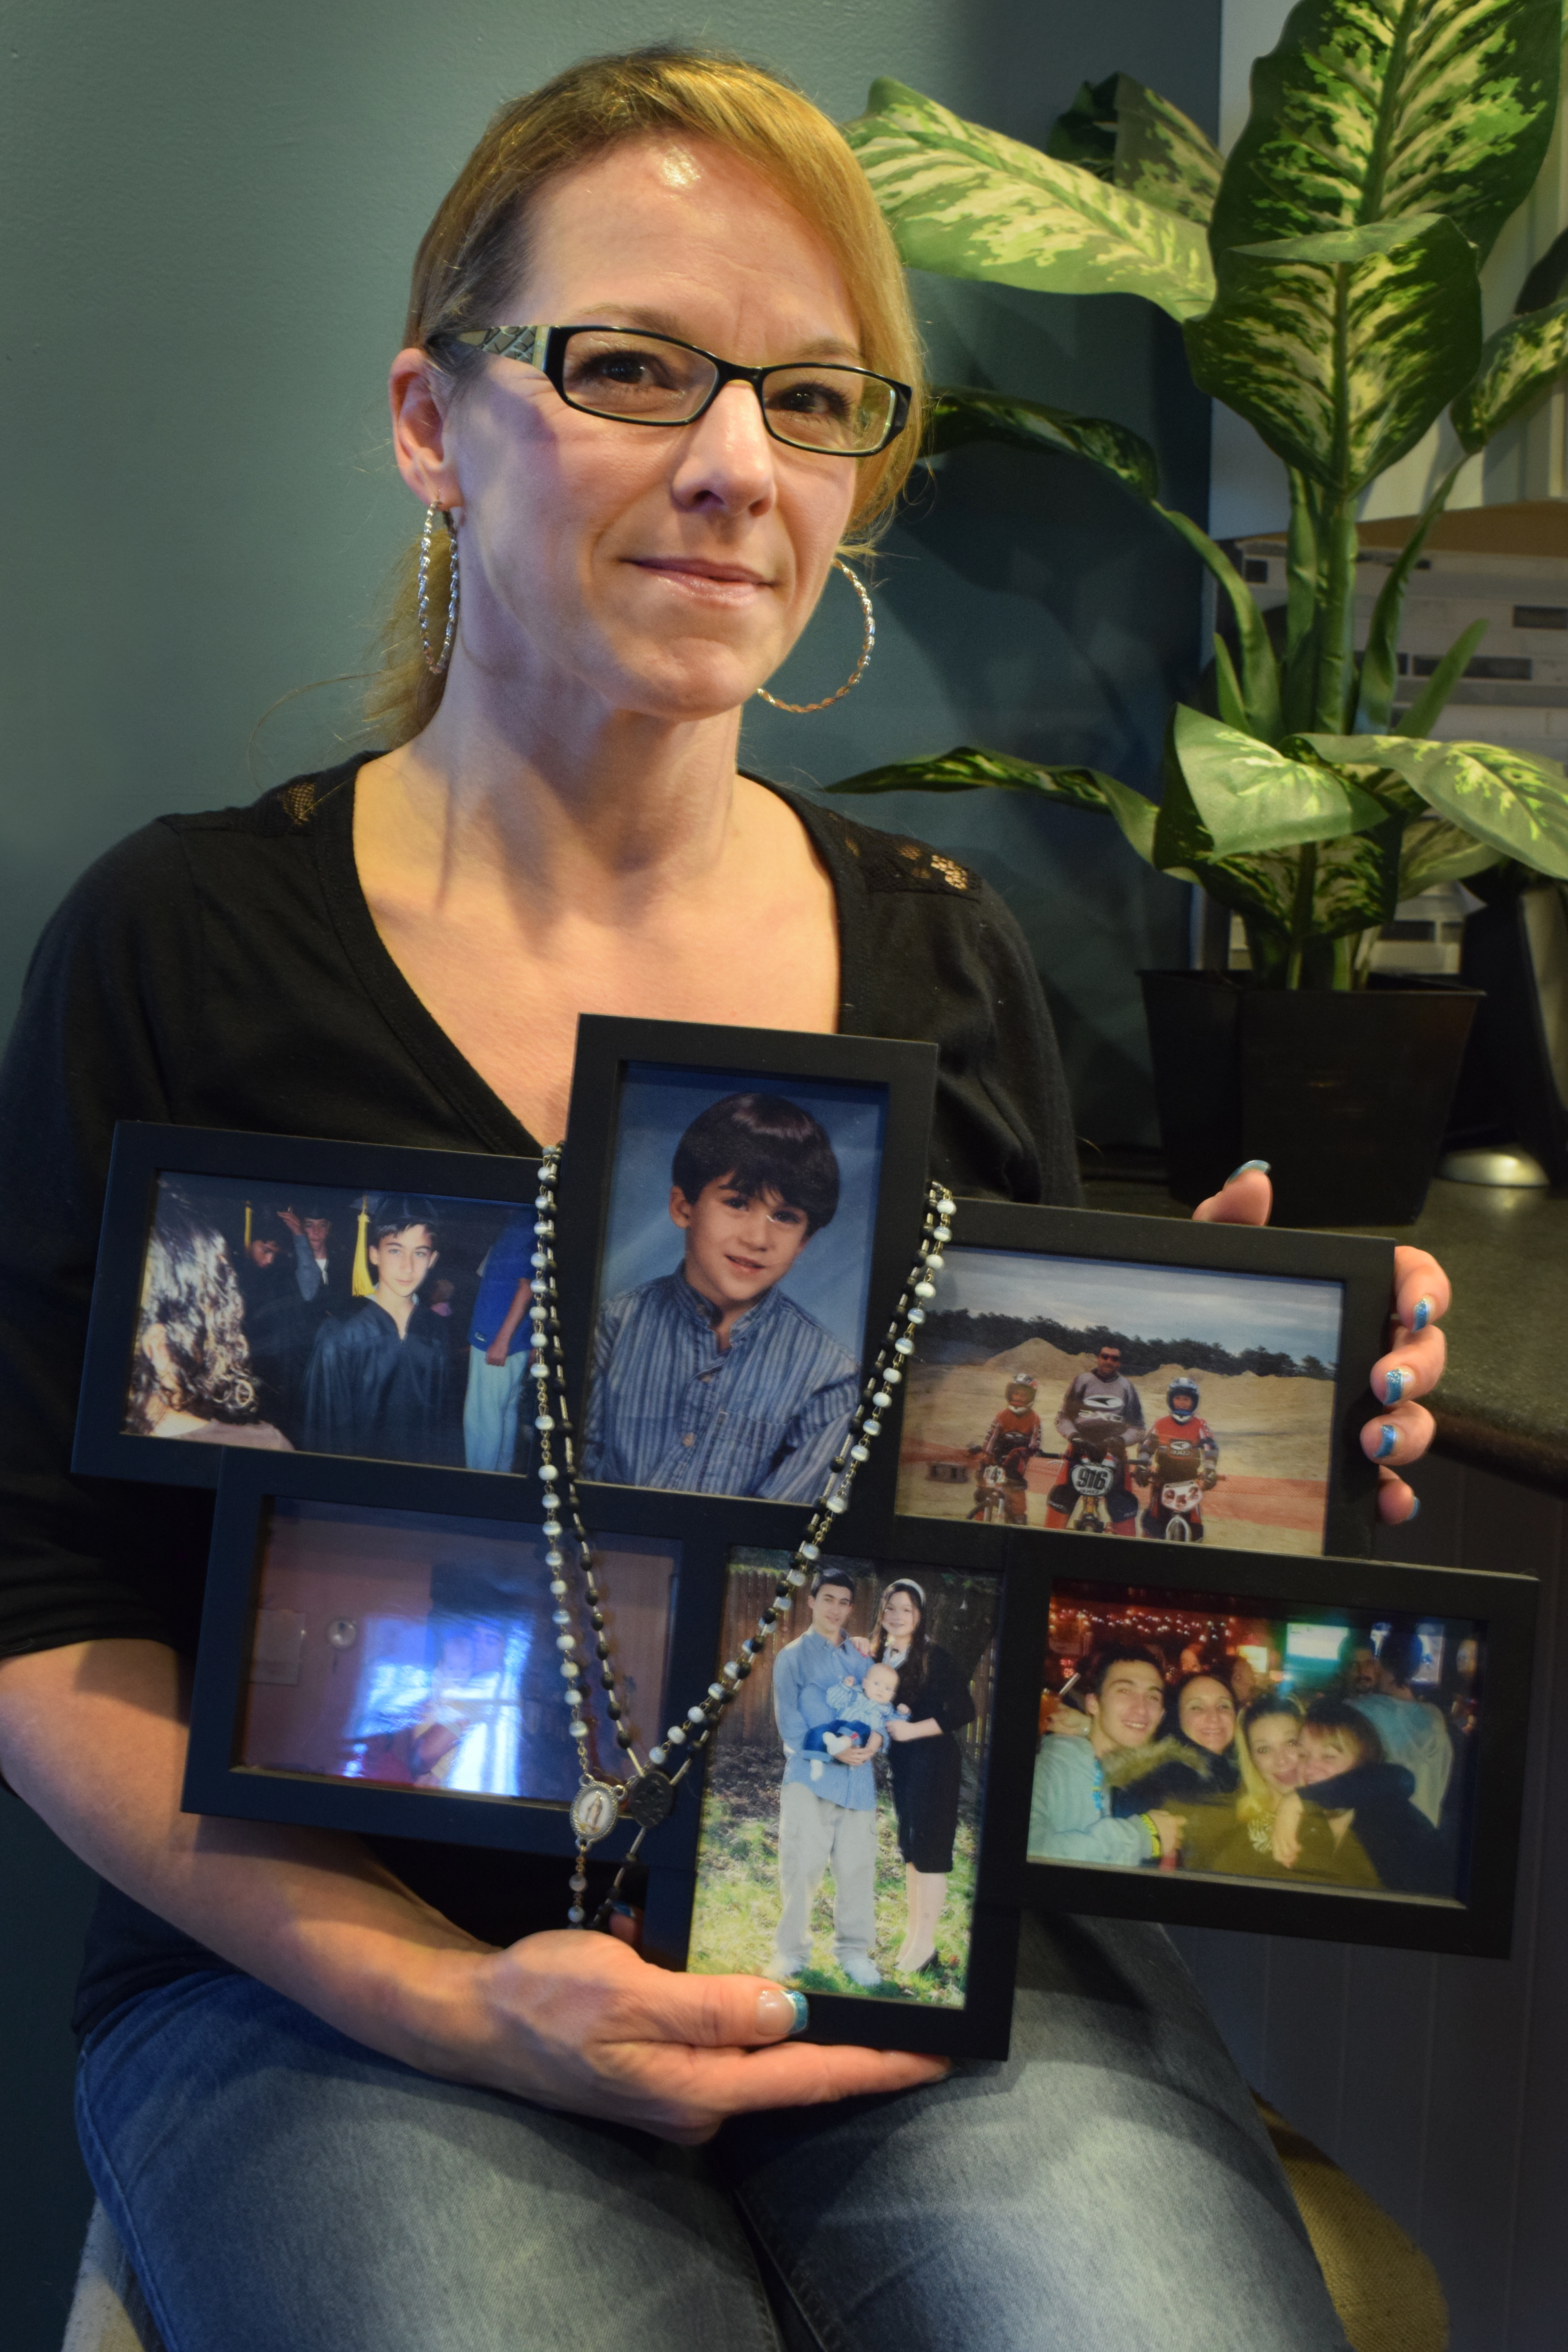 Carrie took the grief from her son's death and turned it into an organization that raises money for families who are also struggling with addiction.